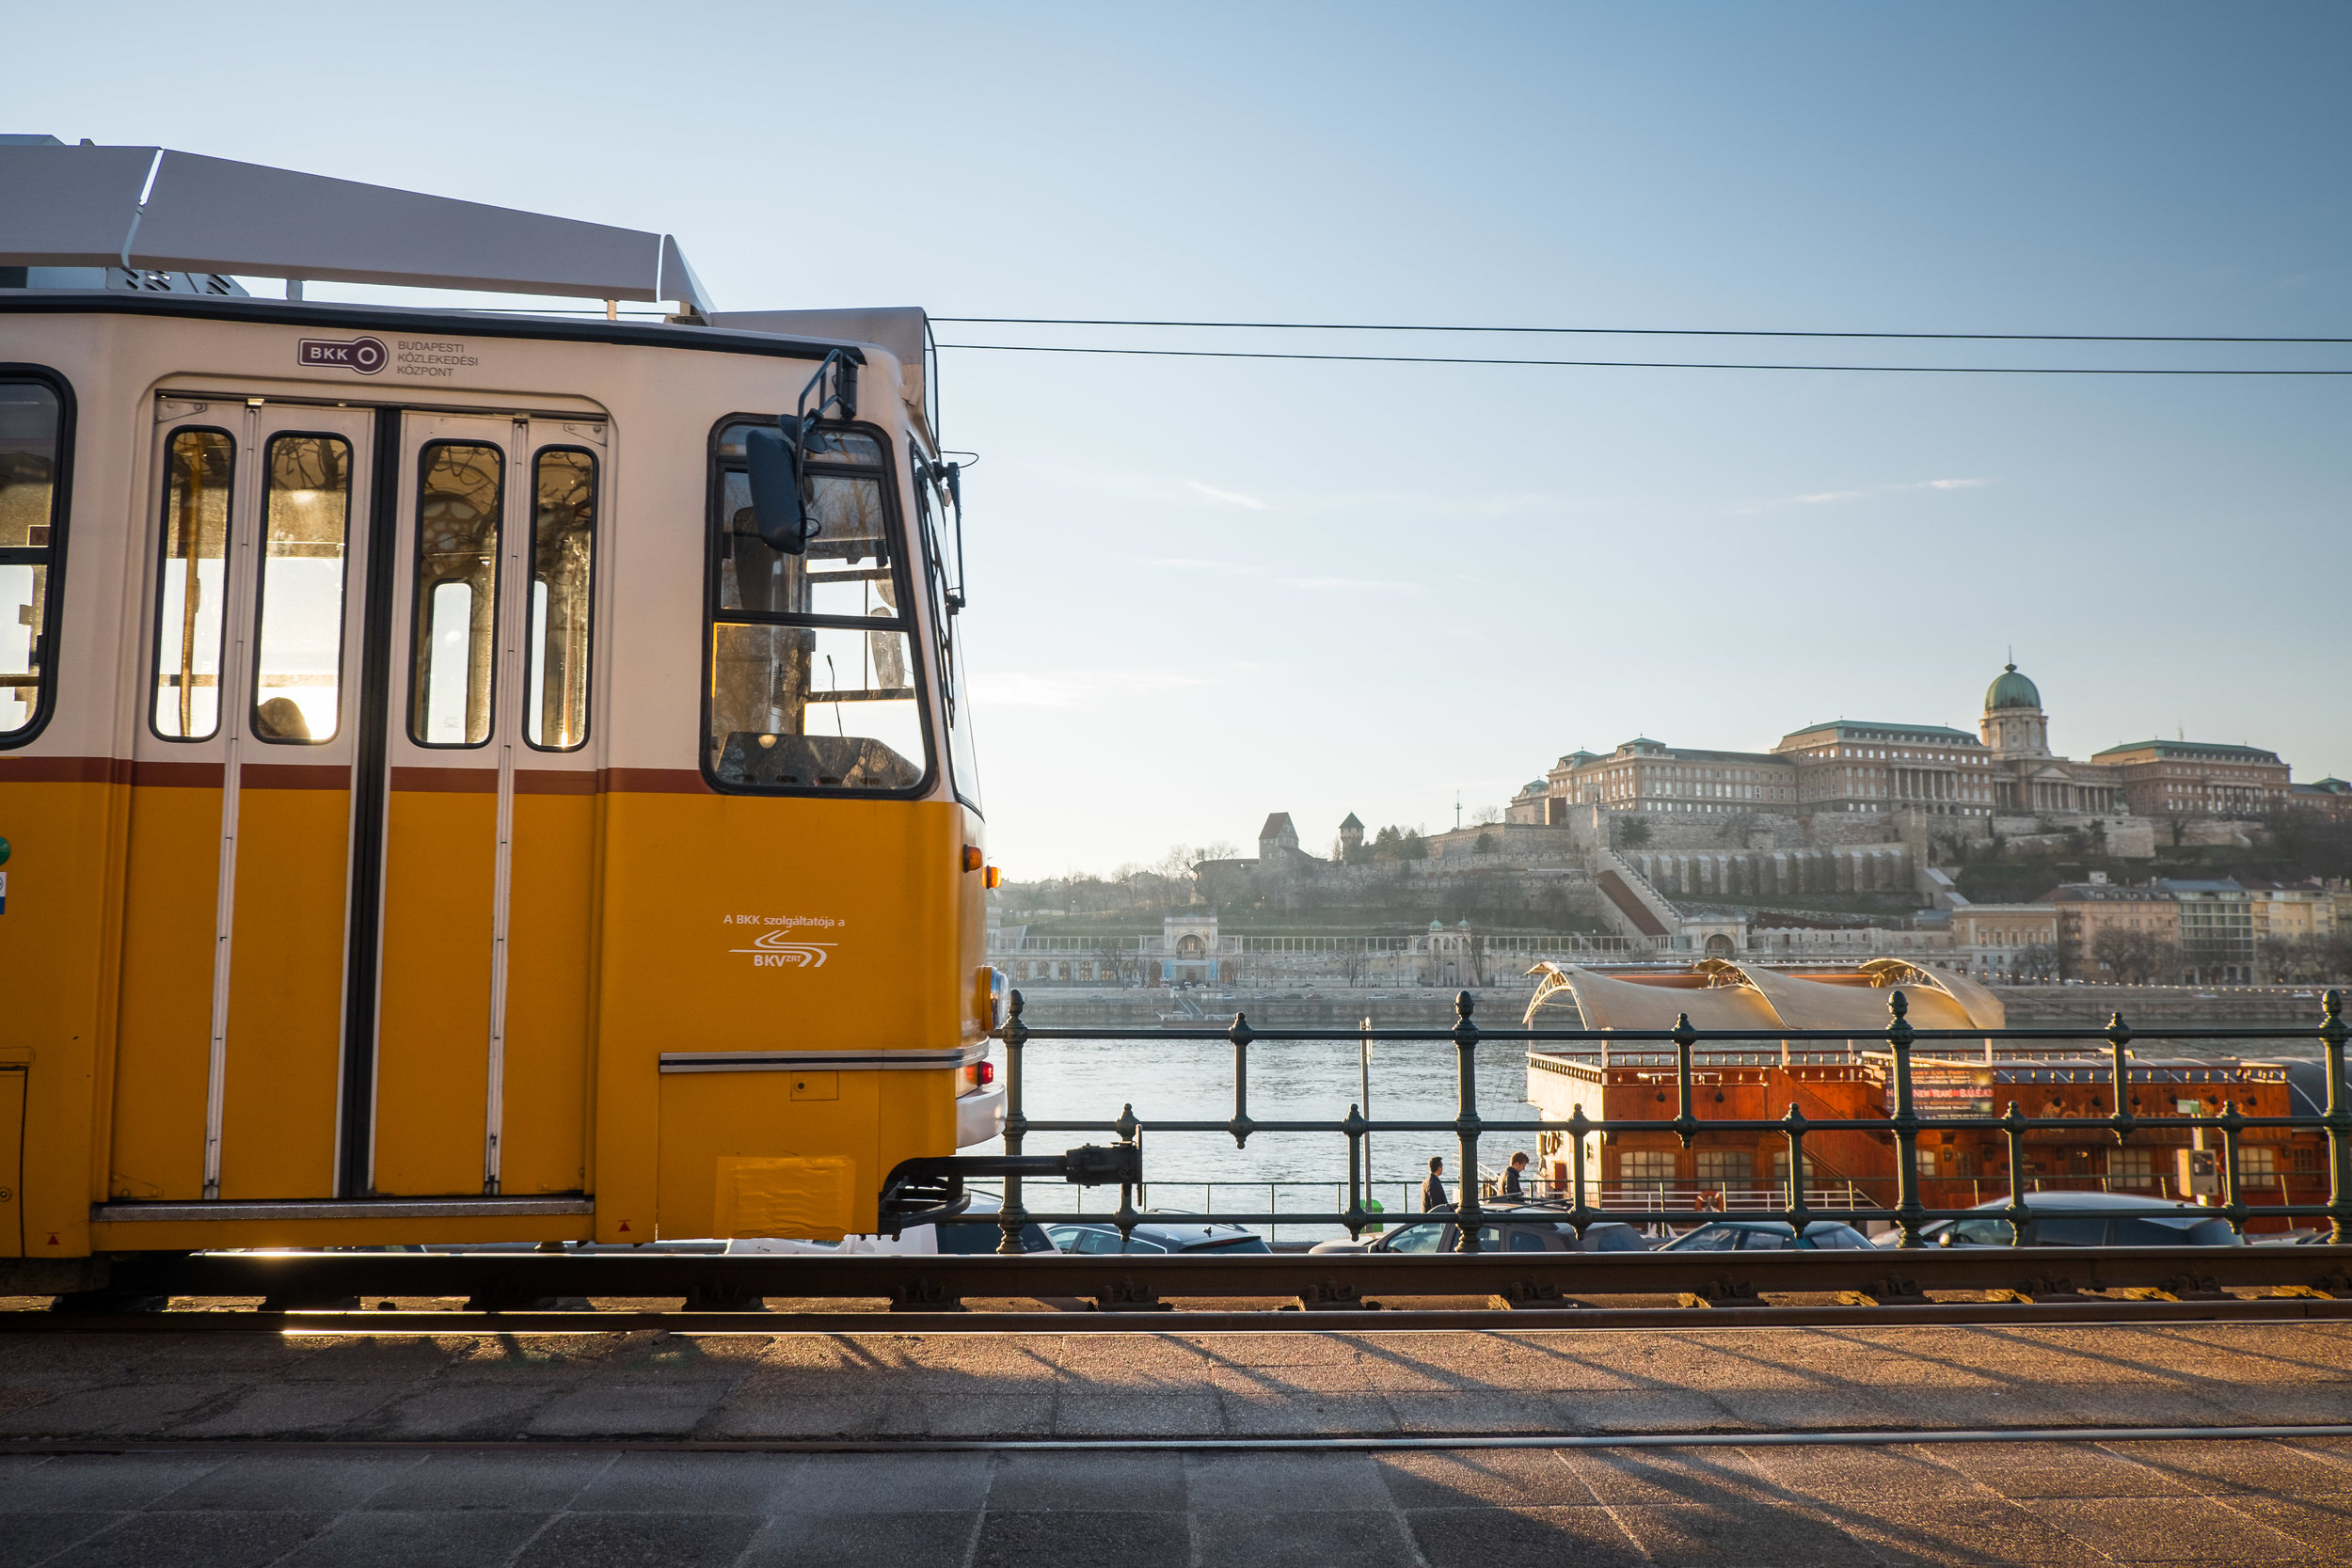 Tram No. 2 along the Danube River with Buda and Buda Castle in the background